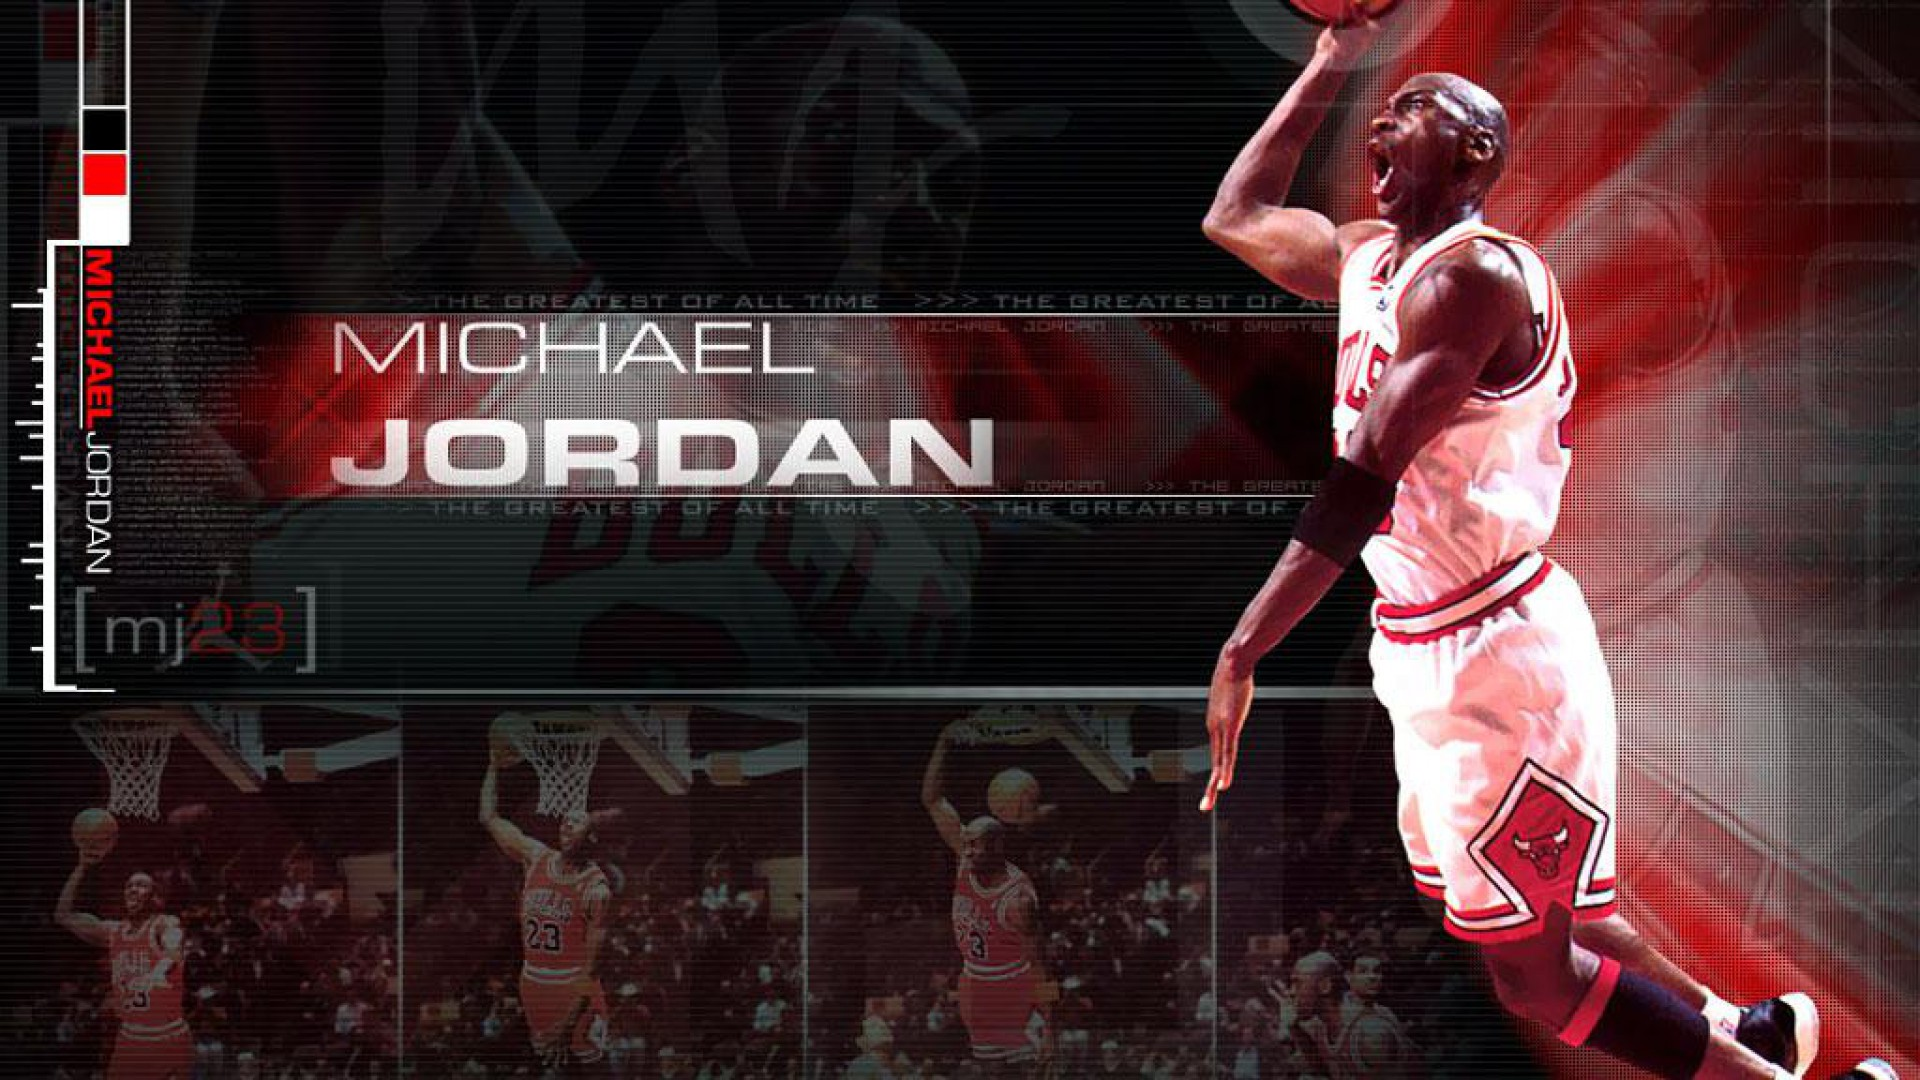 Jordan Wallpapers HD free download | PixelsTalk Net